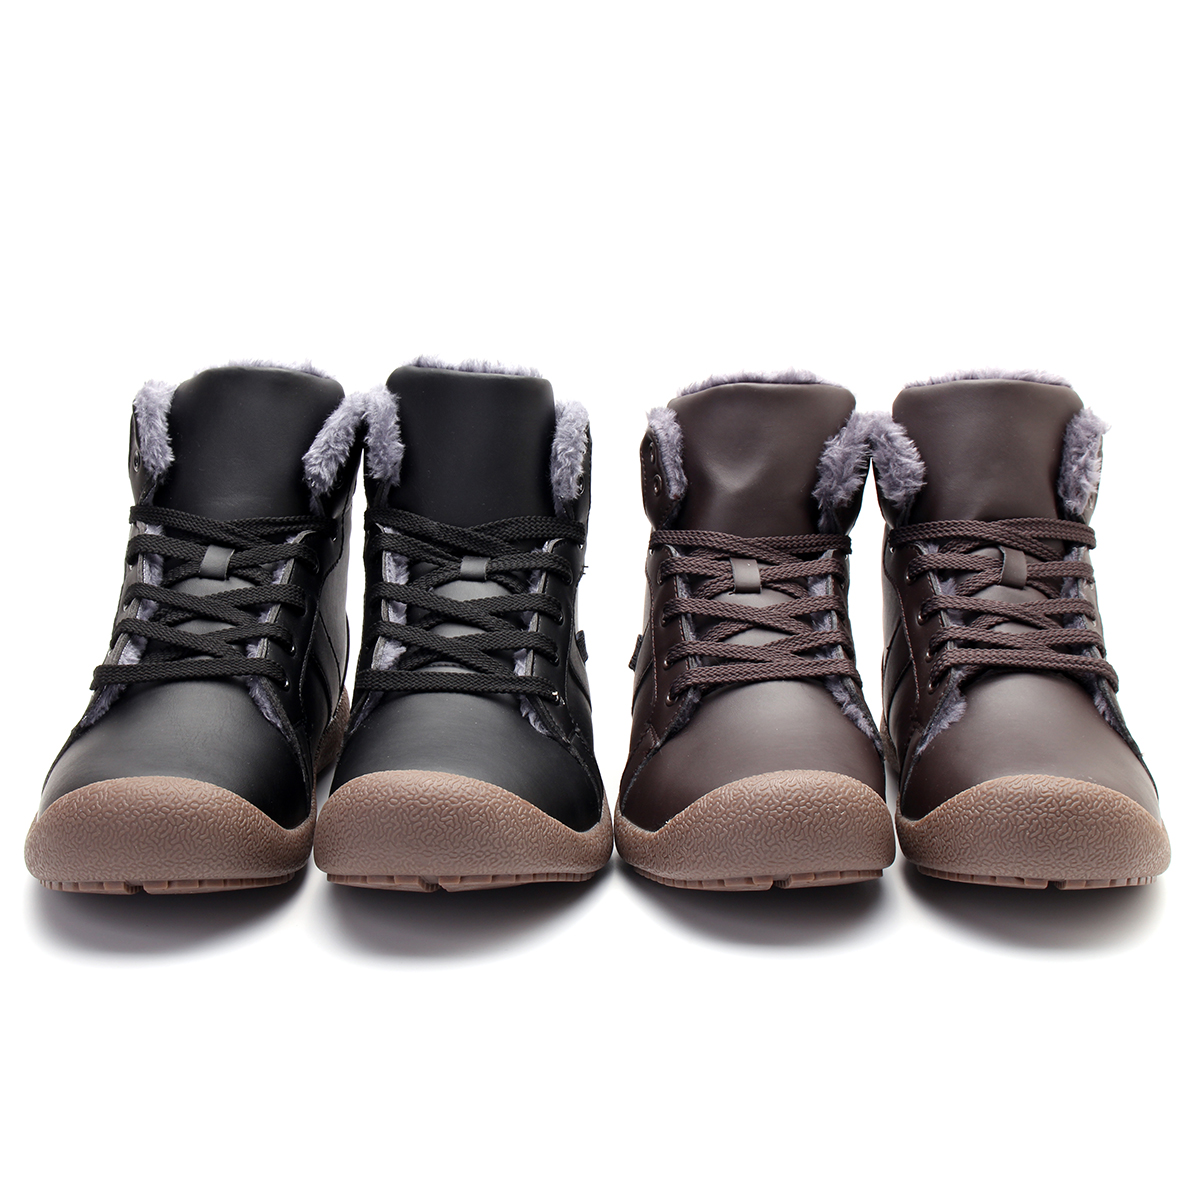 Men's Winter Warm Snow Boot Waterproof PU High Top Lace Up Comfy Sneaker Shoes